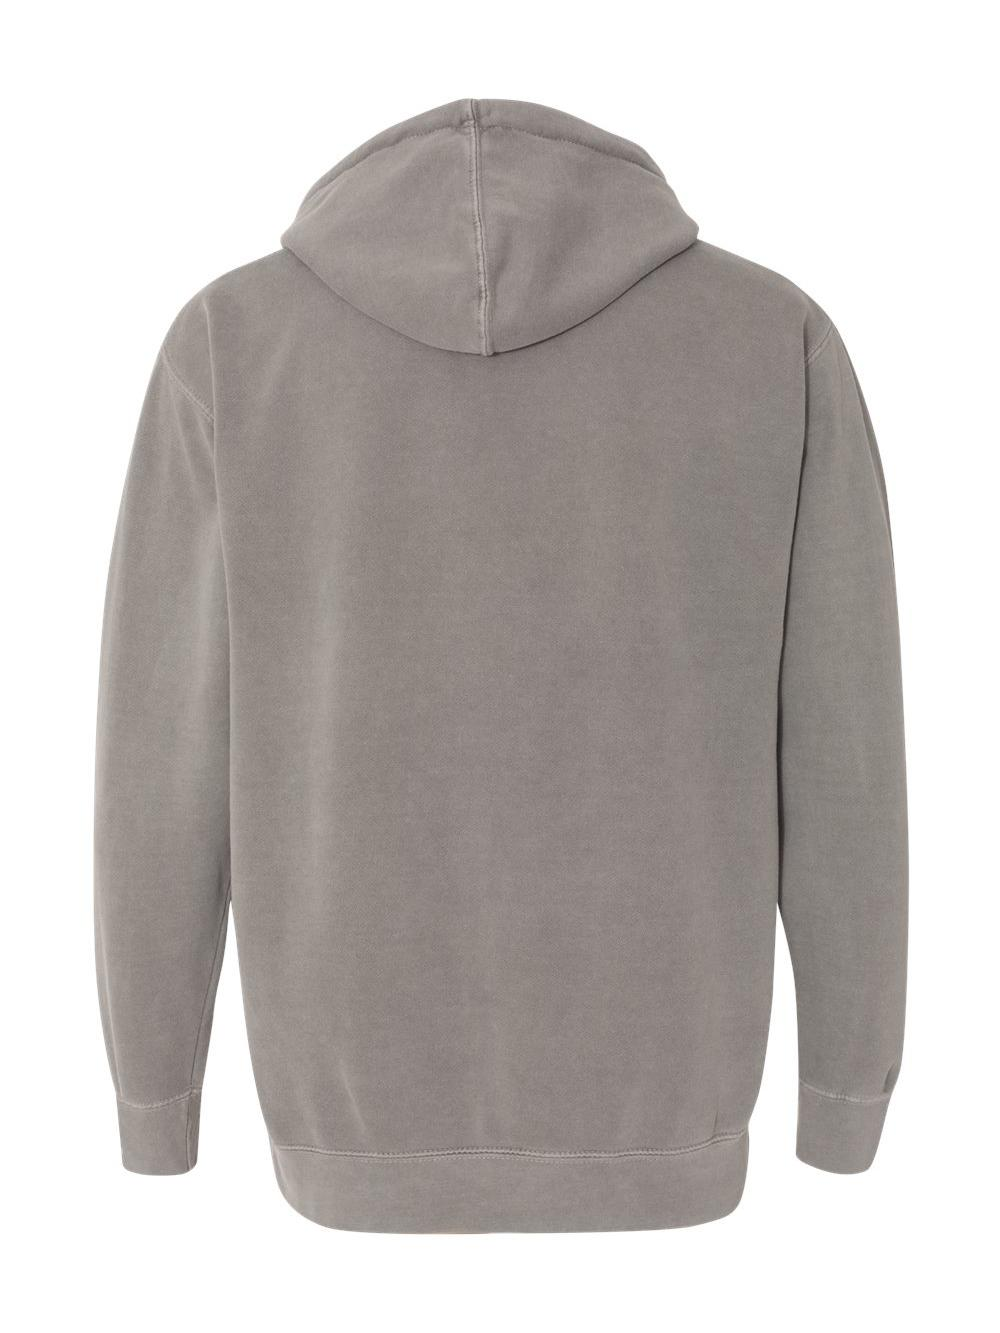 Comfort-Colors-Garment-Dyed-Hooded-Pullover-Sweatshirt-1567 thumbnail 19